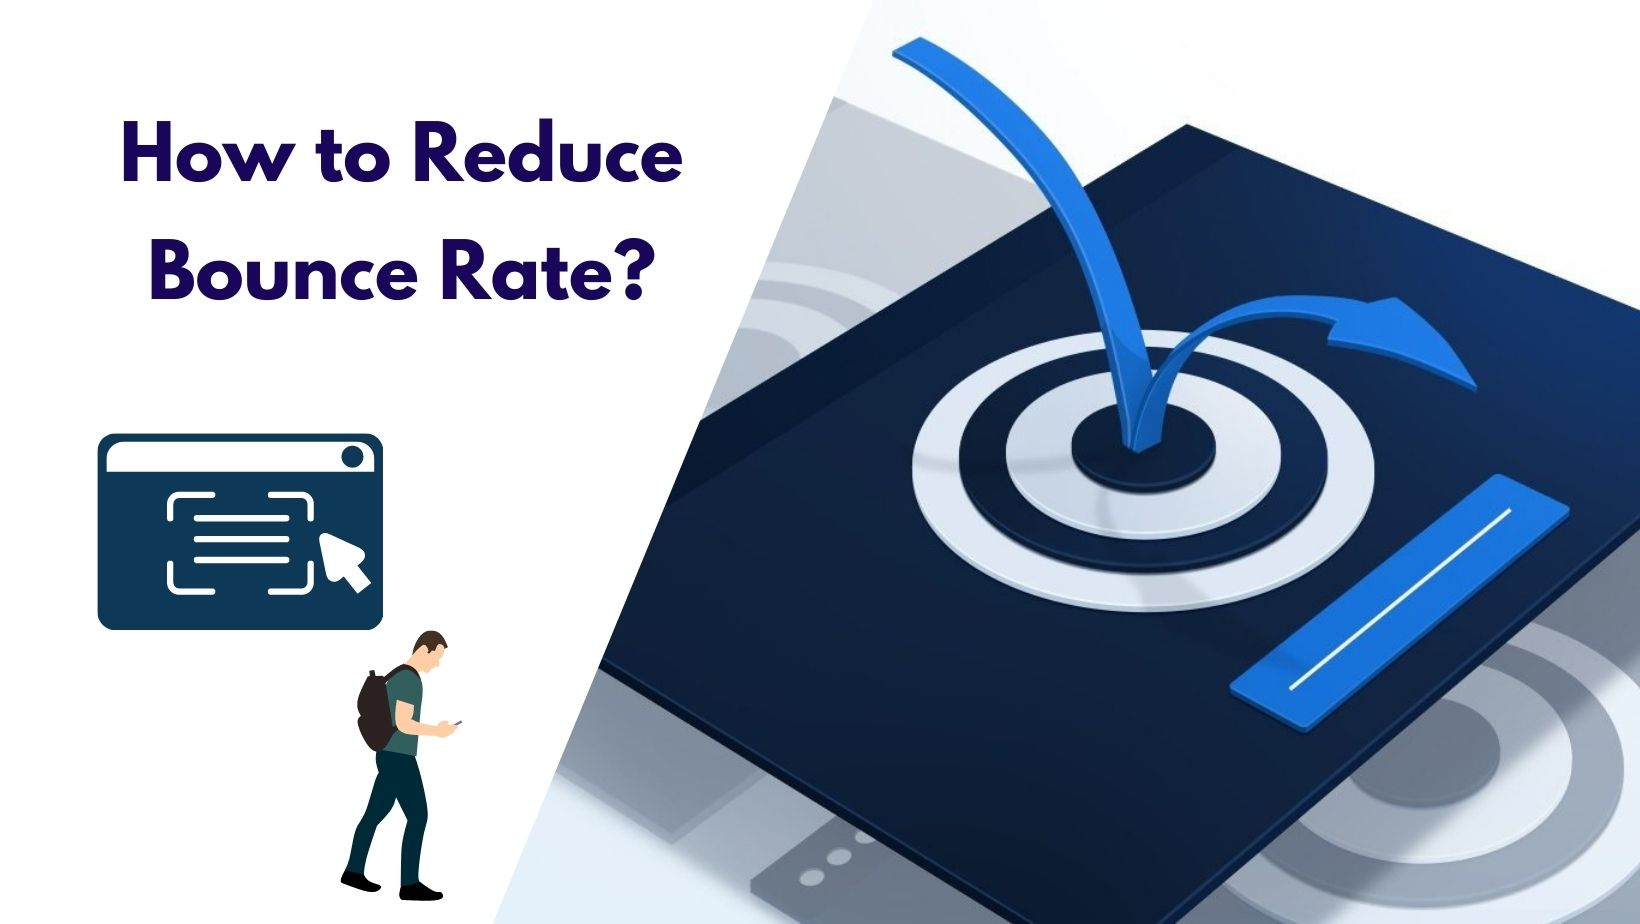 image of how to reduce bounce rate of website